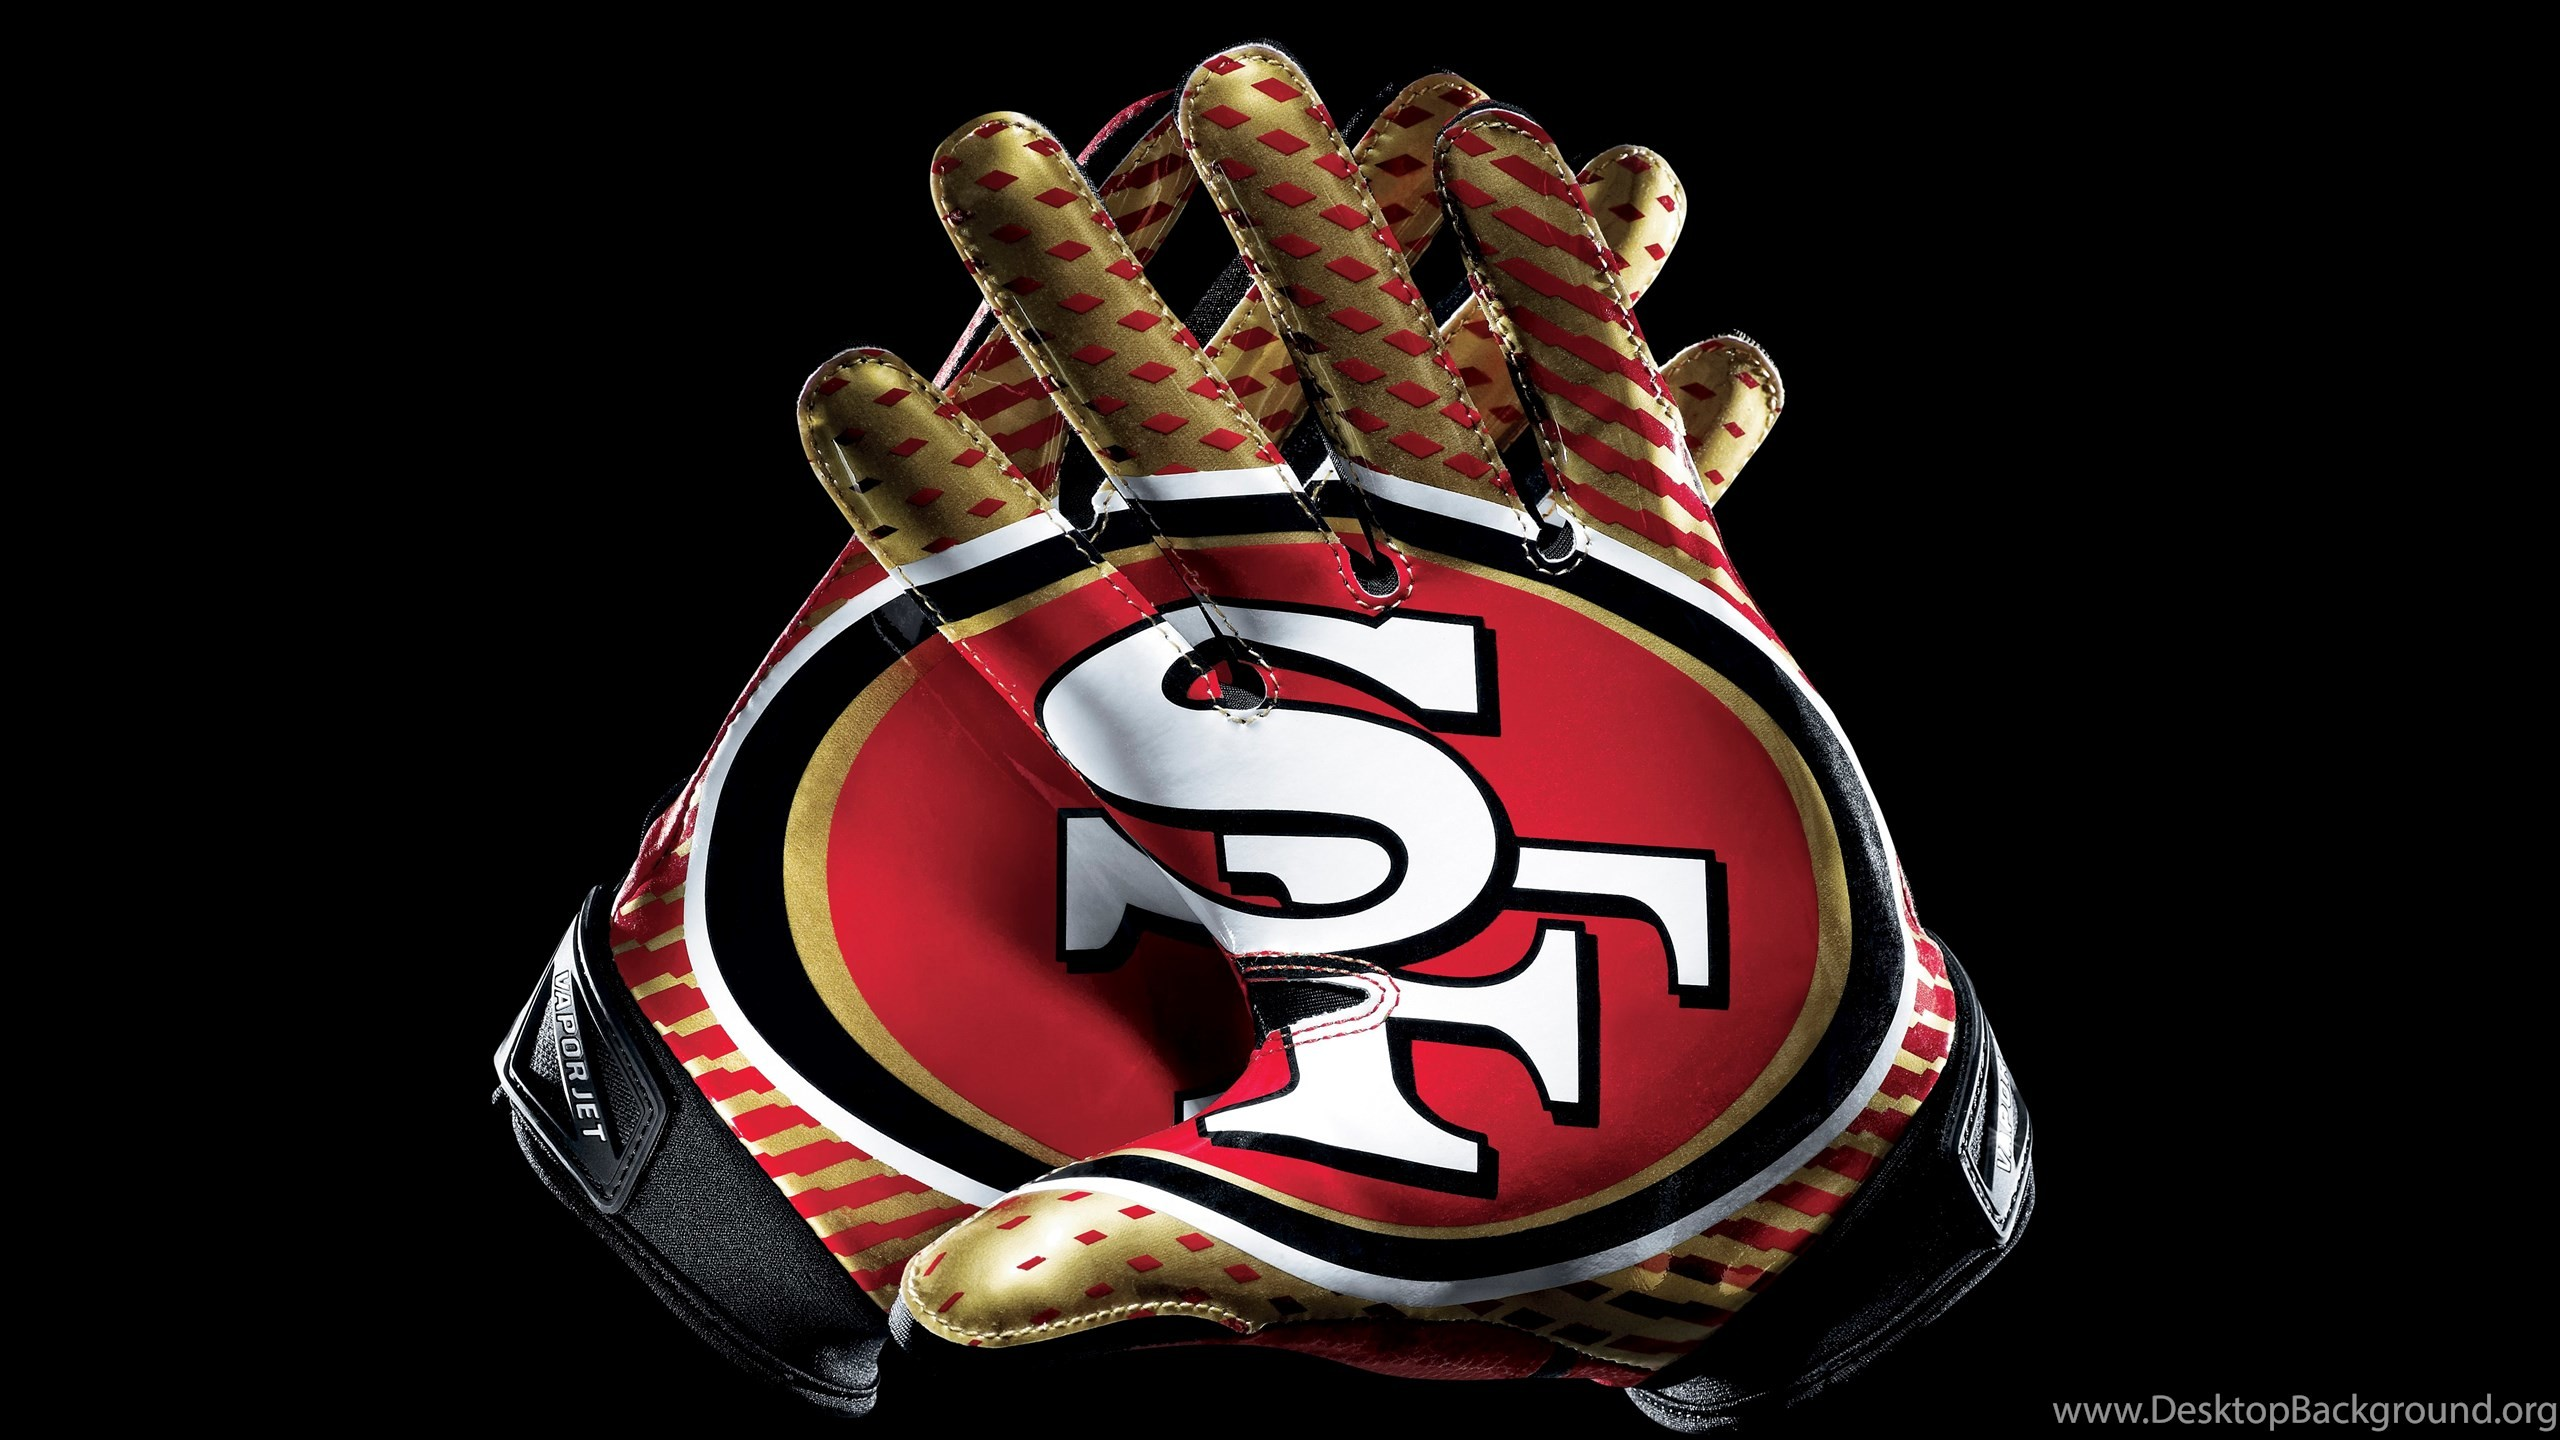 2160x1440 San Francisco 49ers Wallpapers - Wallpaper Cave